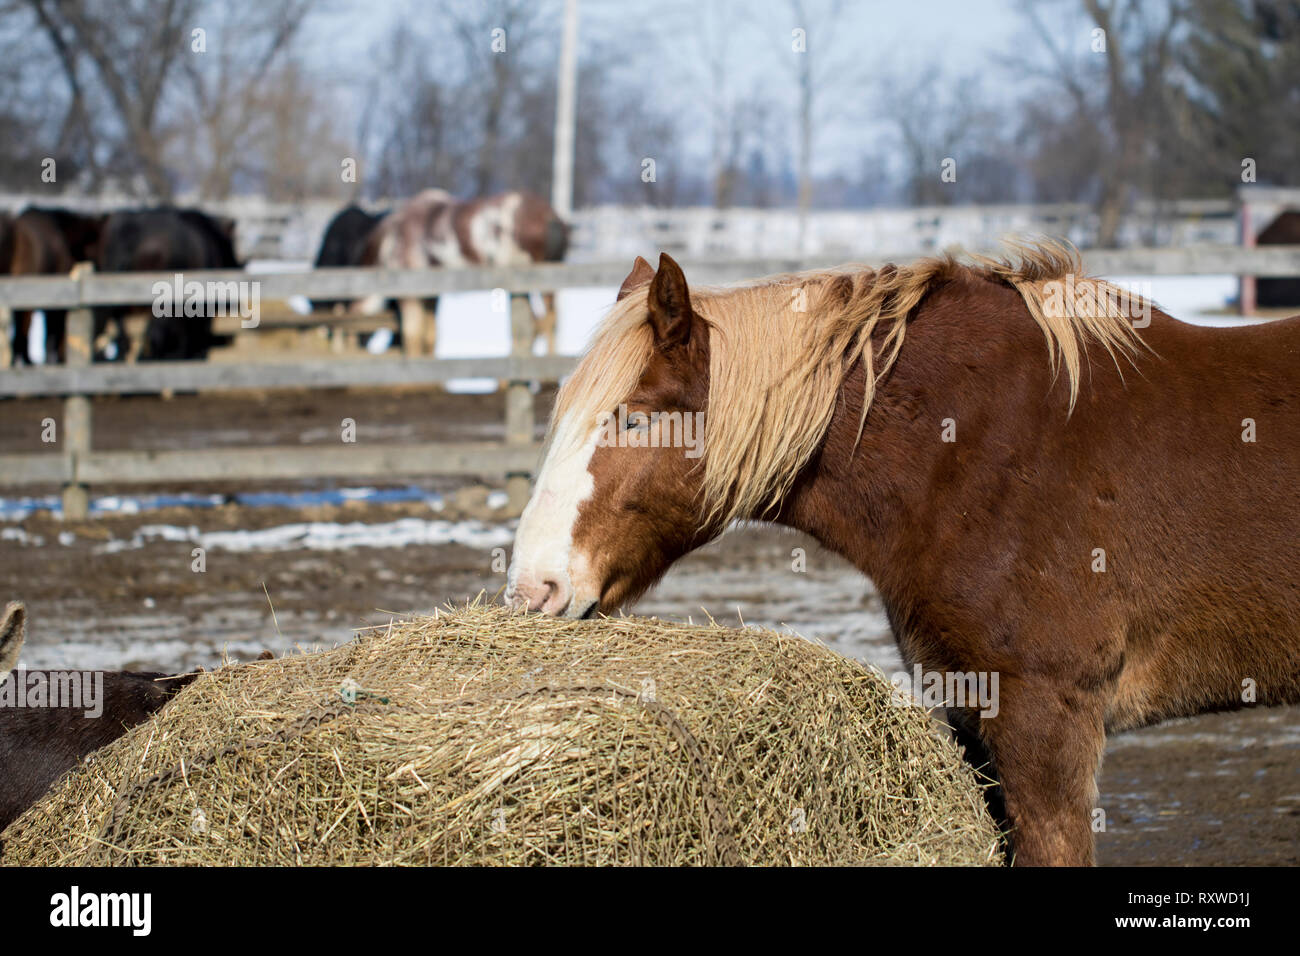 Stallion horse grazing on hay at a farm sanctuary close up. Beautiful brown horse with long mane outside on a ranch. - Stock Image